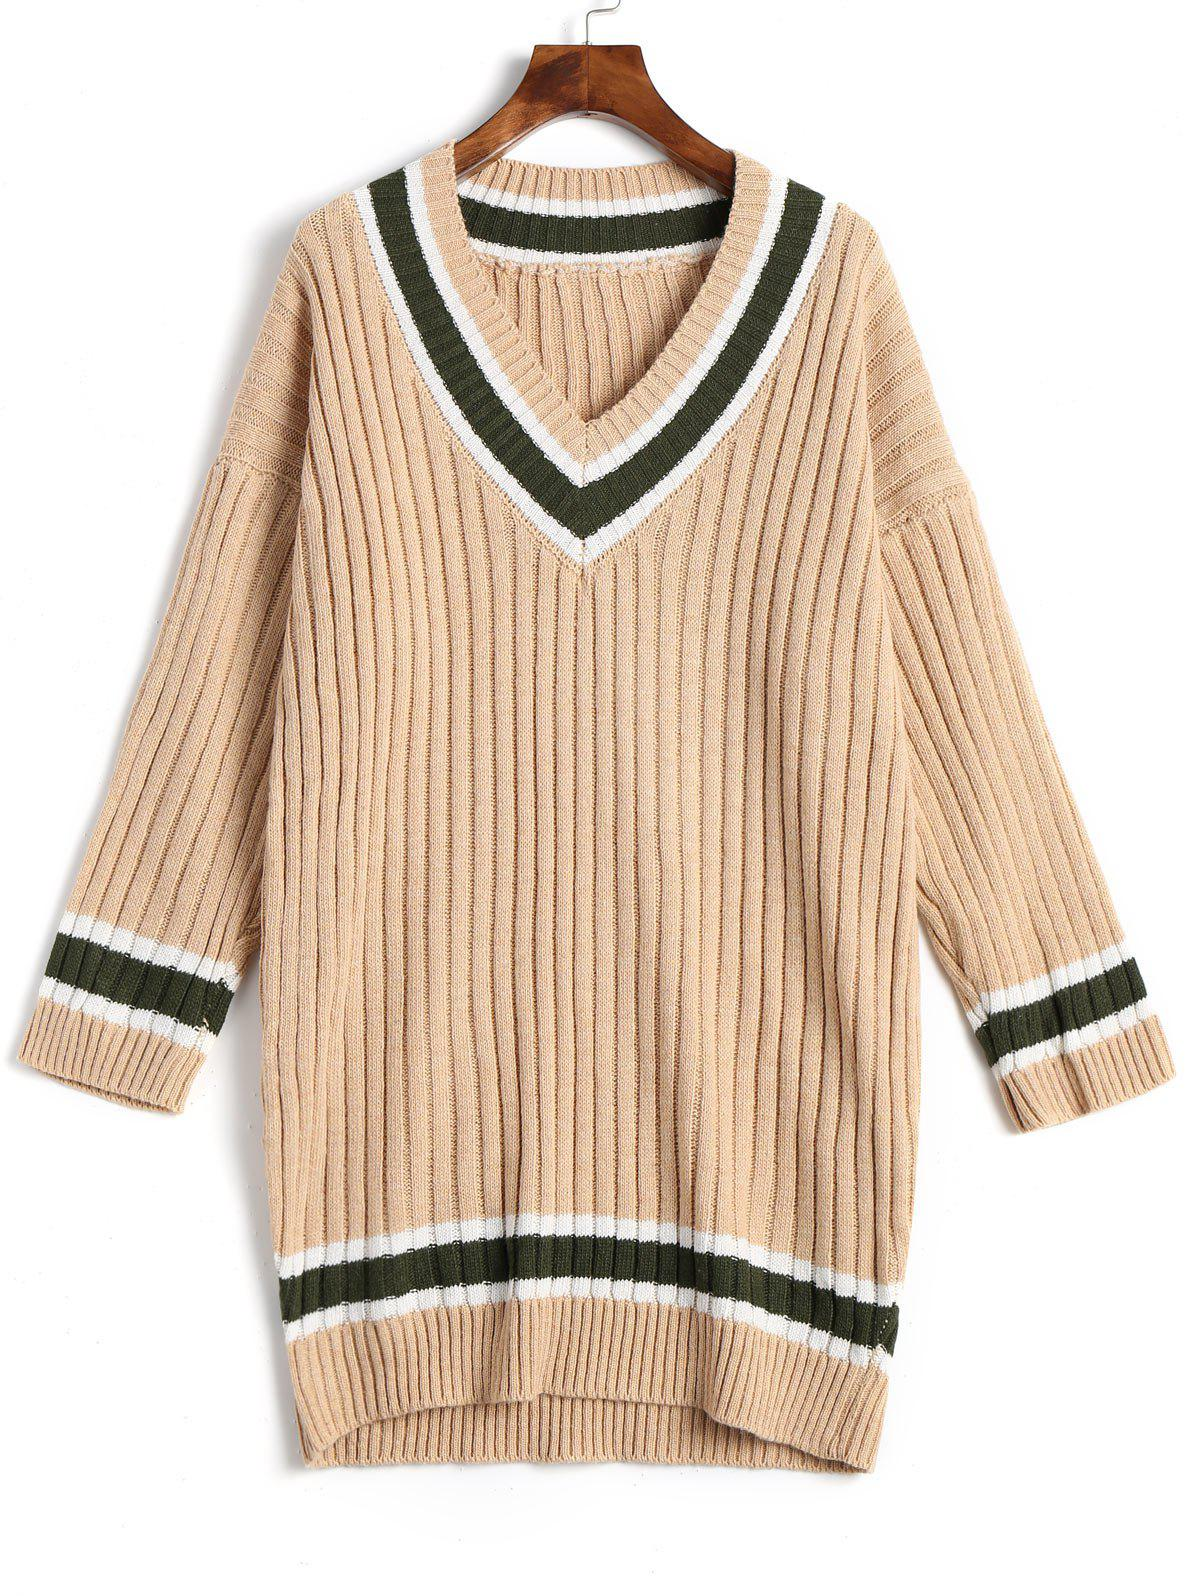 Ribbed Tunic Sweater 234413102